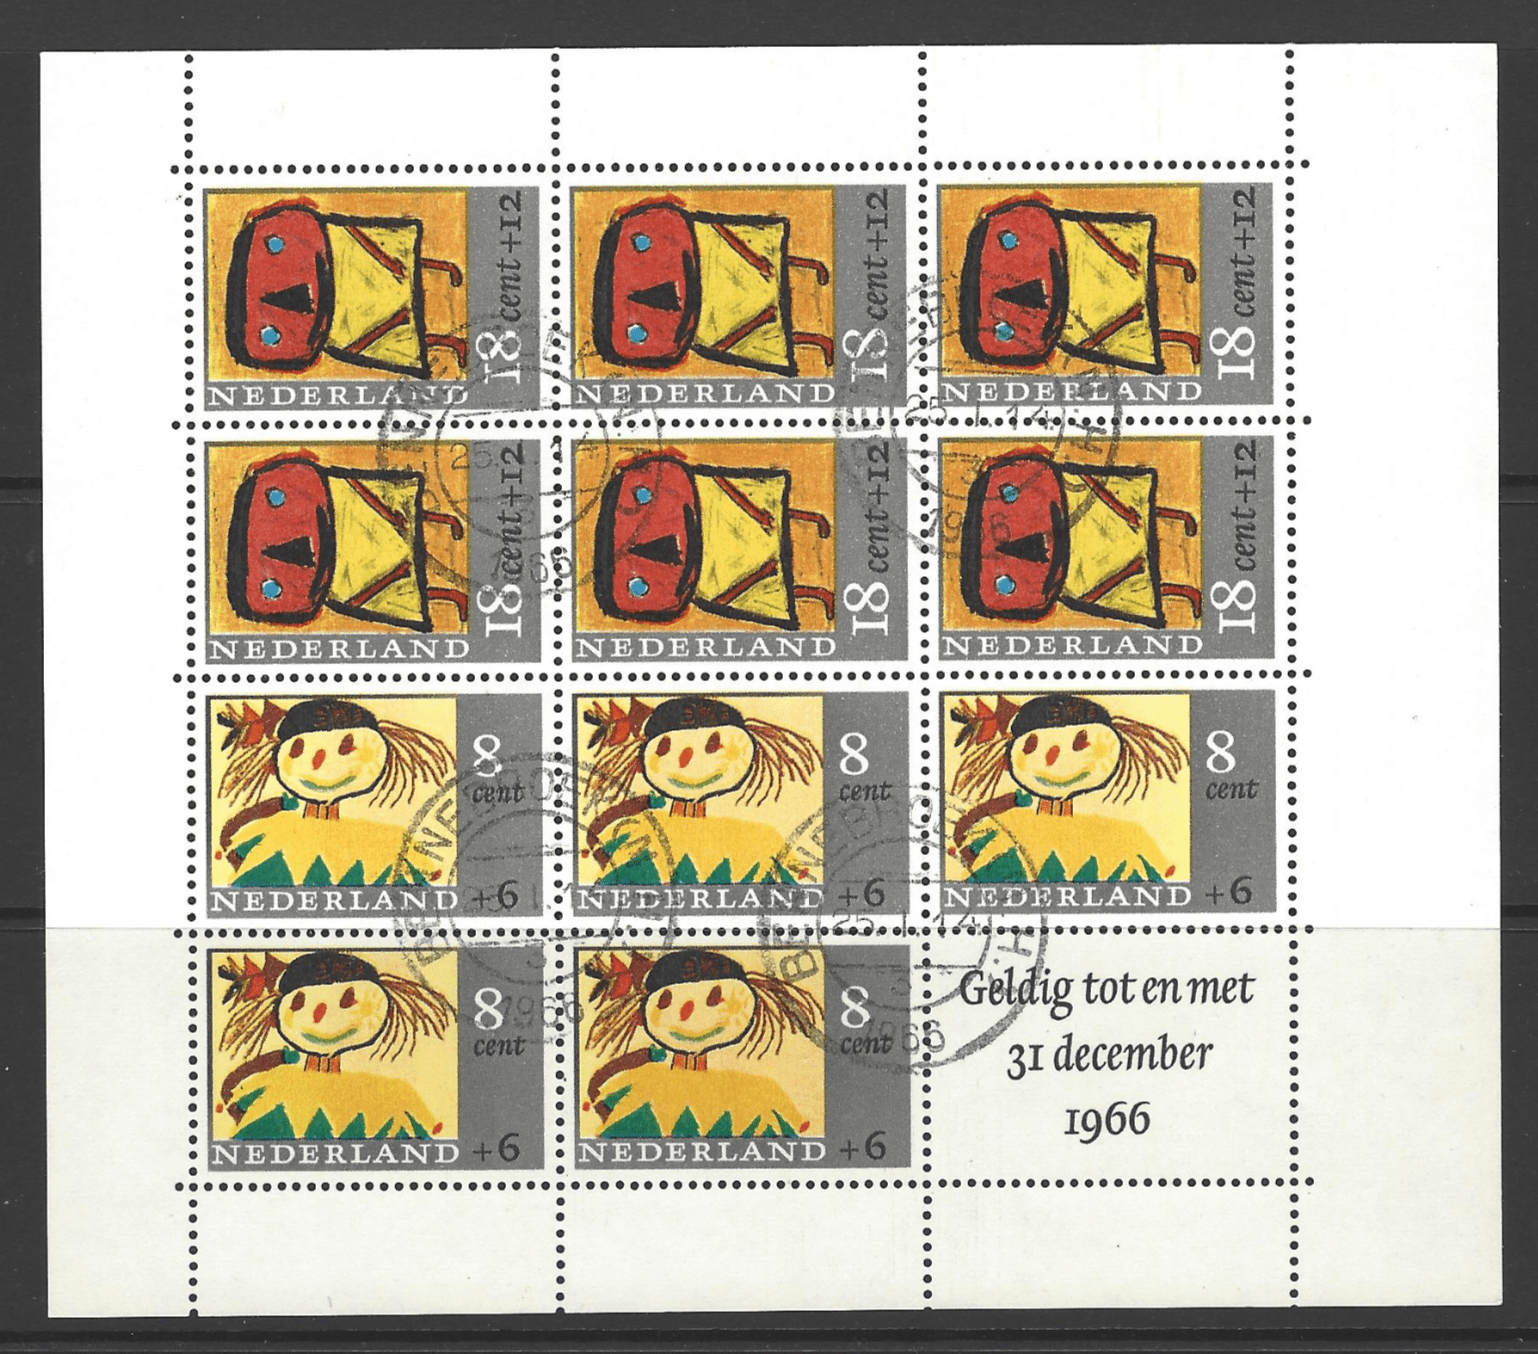 SG MS1006, Mini Sheets Netherlands Stamps